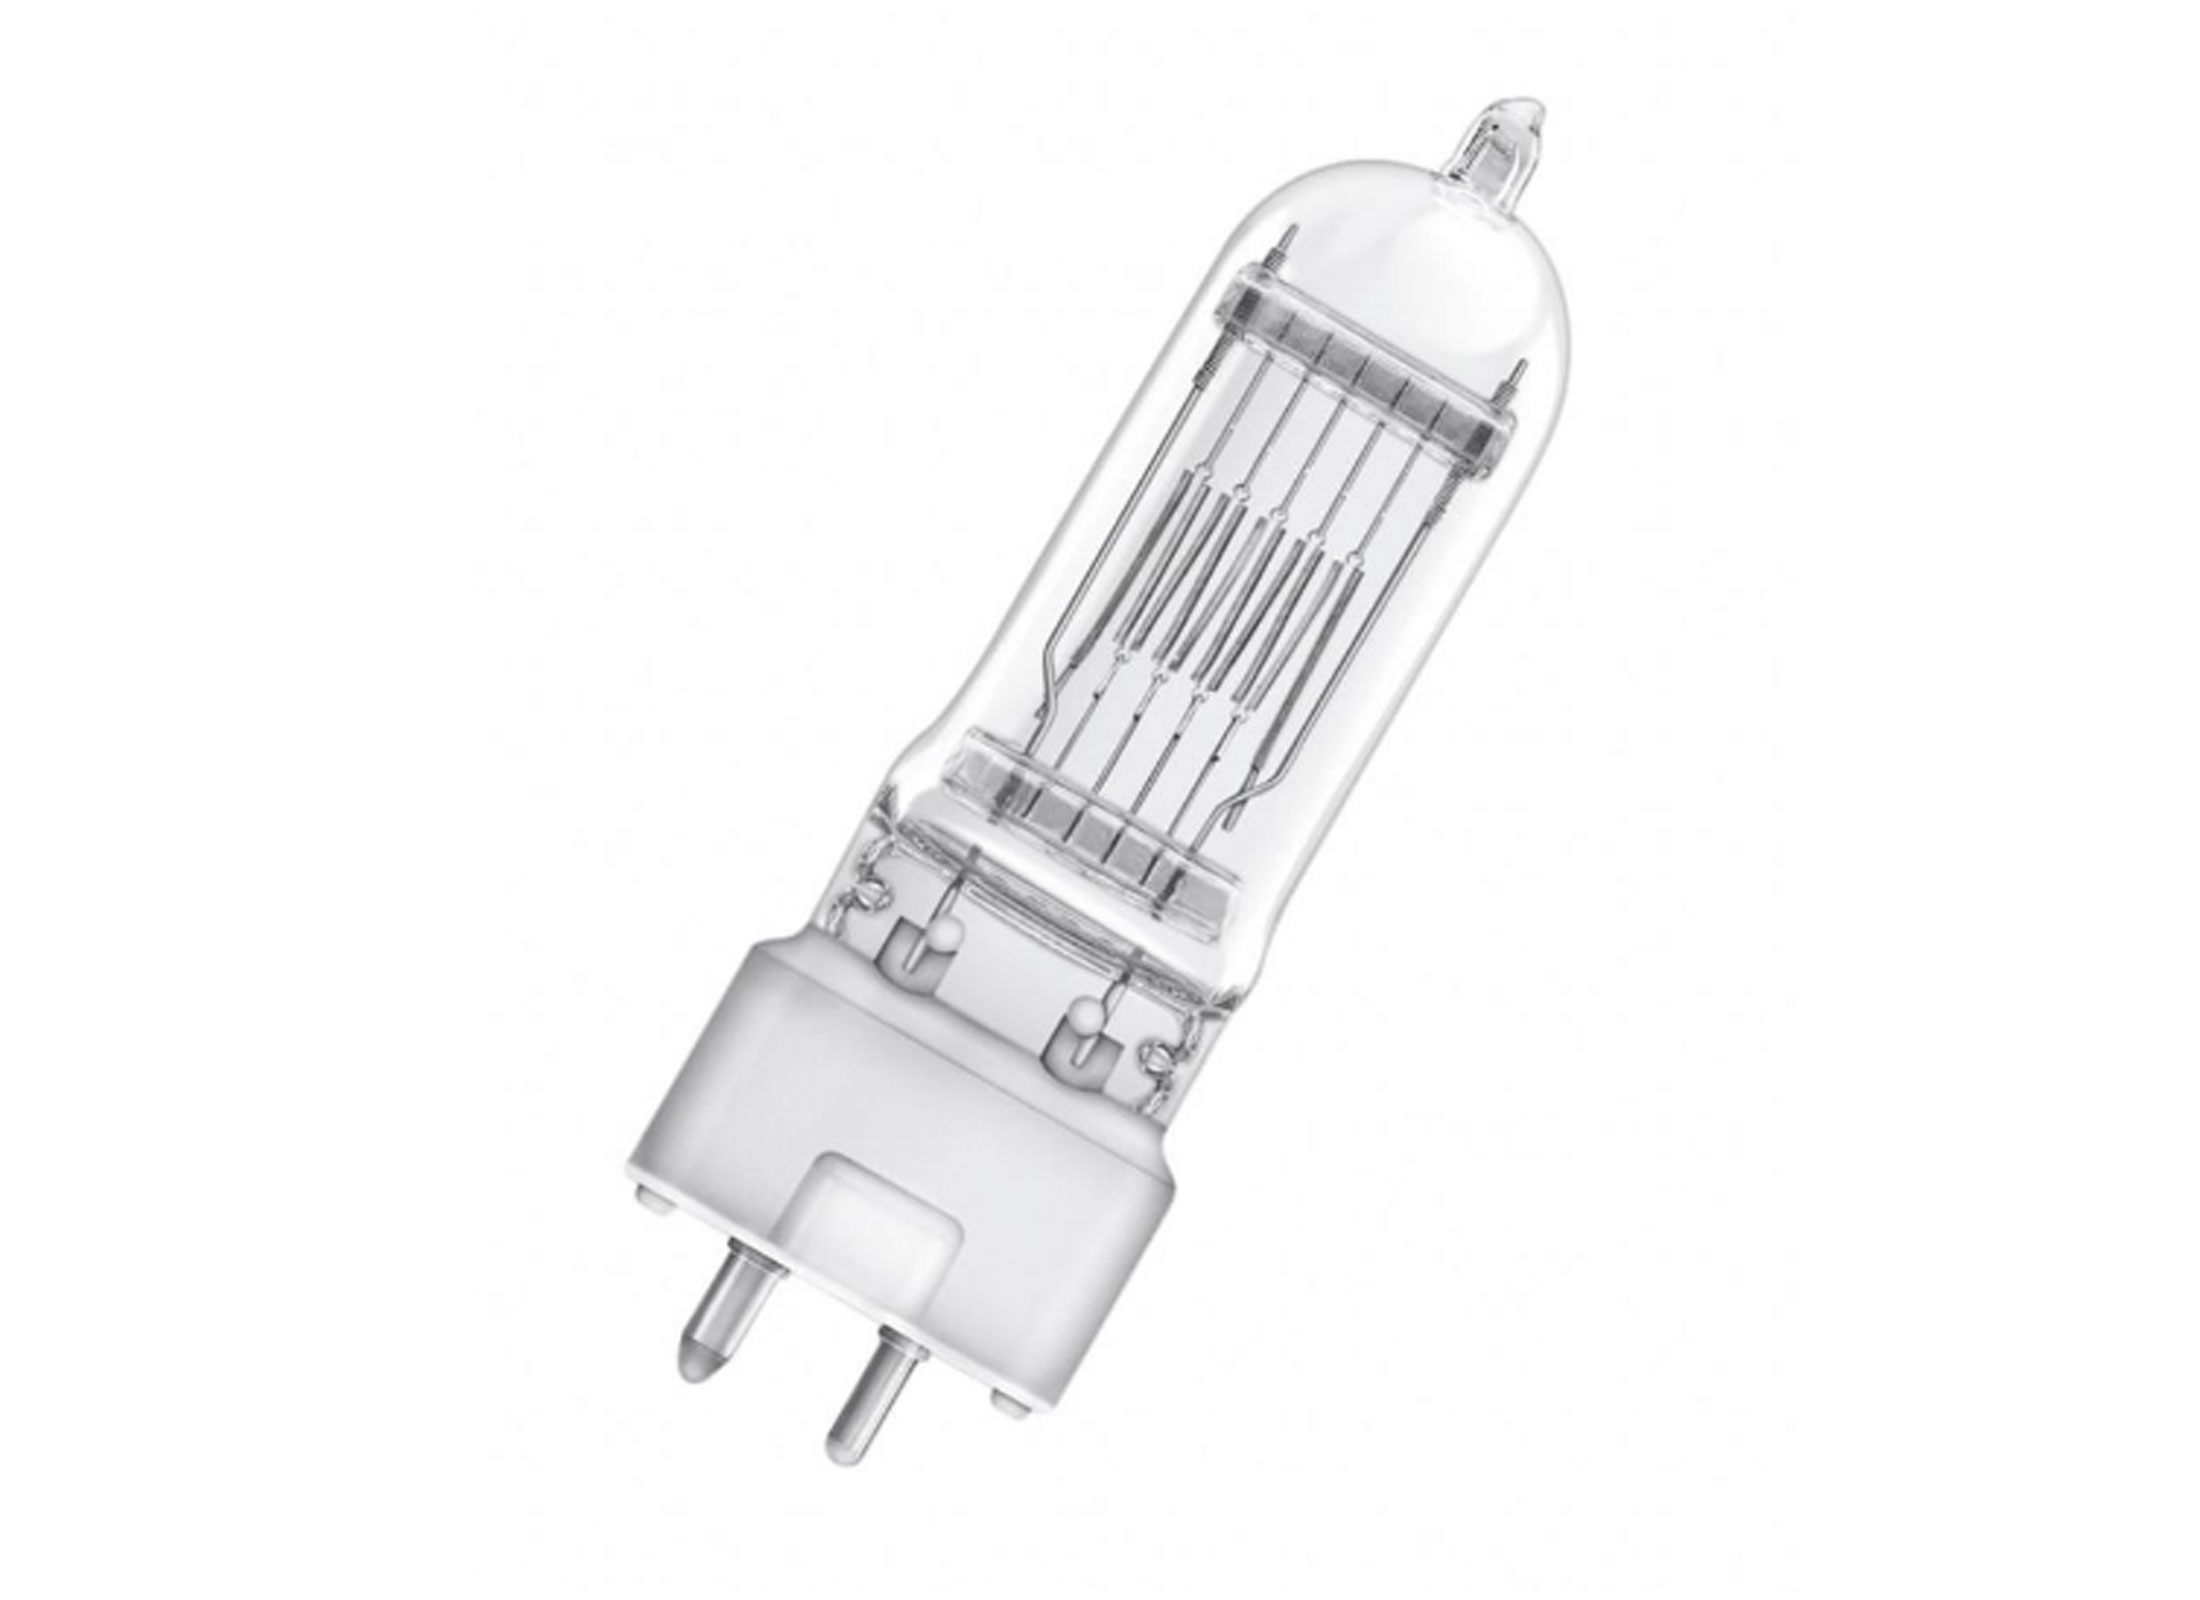 Osram 64672 M40 Lamp Online At Low Prices At Huss Light Sound